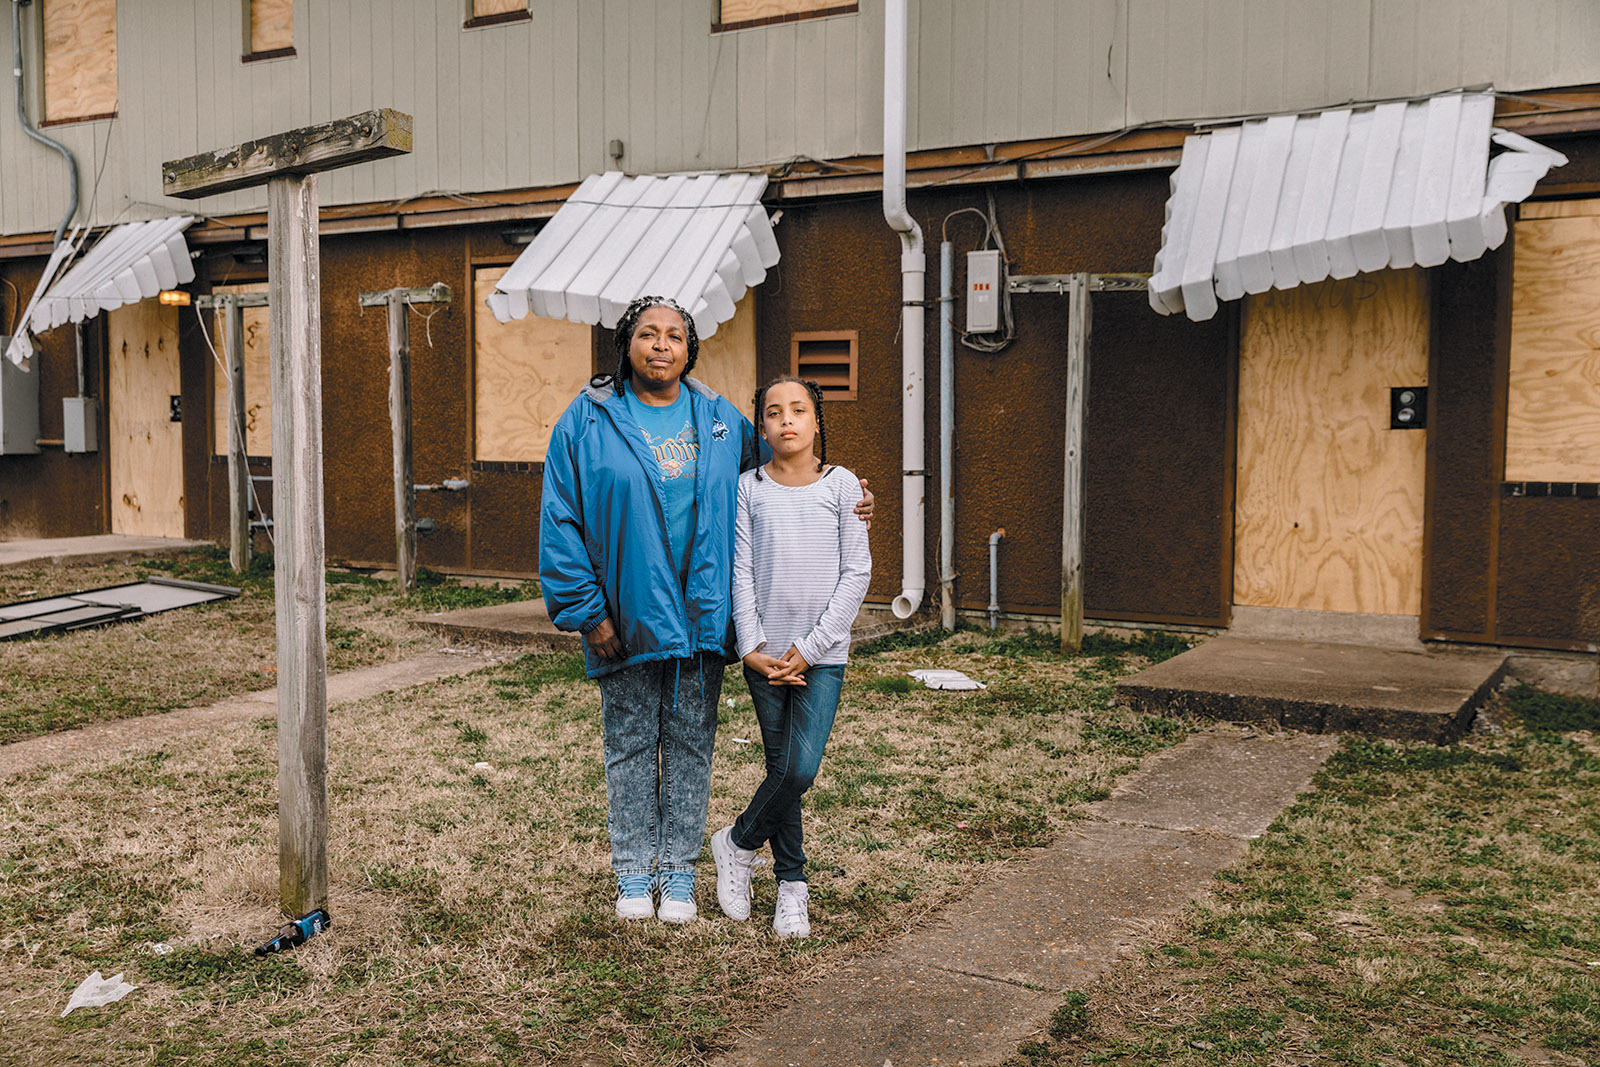 Terri Childs and her daughter Miracle in front of their apartment in the McBride housing project